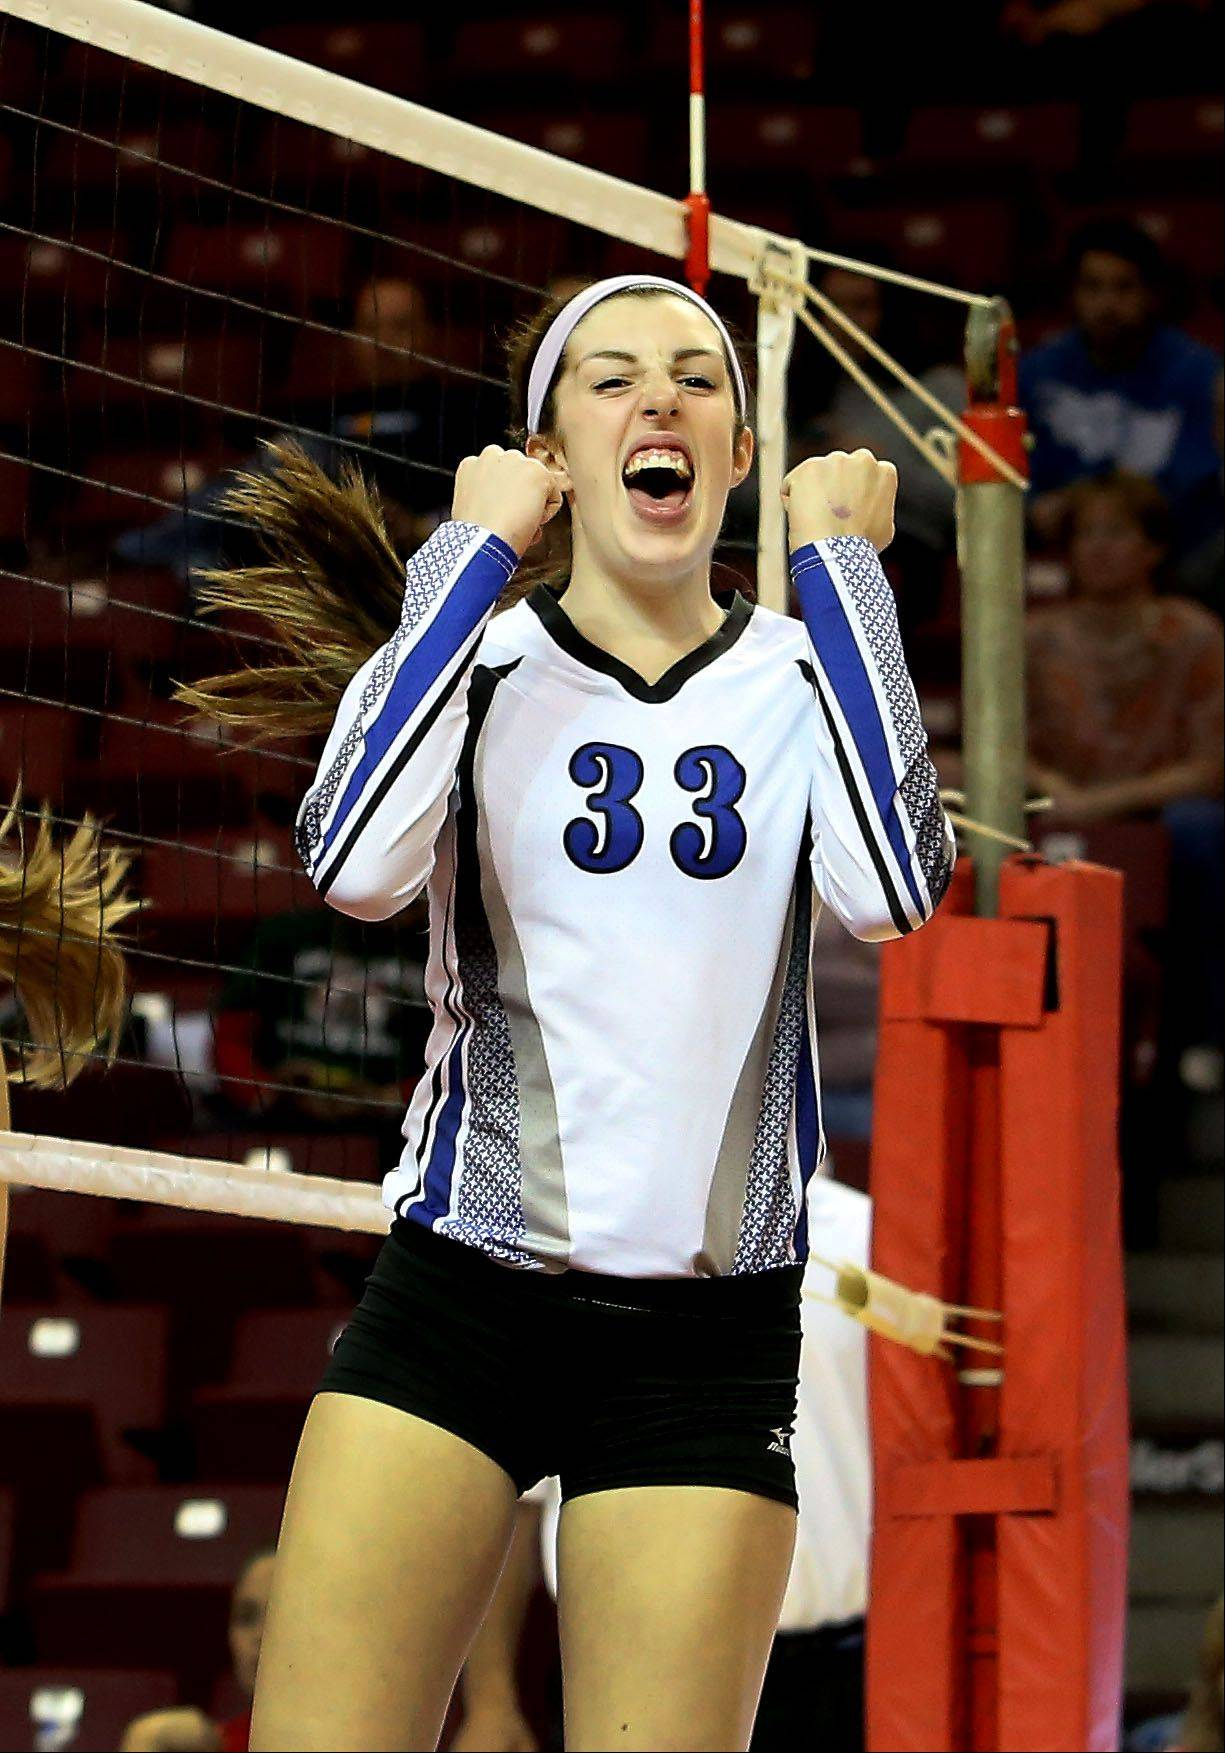 Laney Malloy of St. Francis reacts after winning a point over Breese Central.